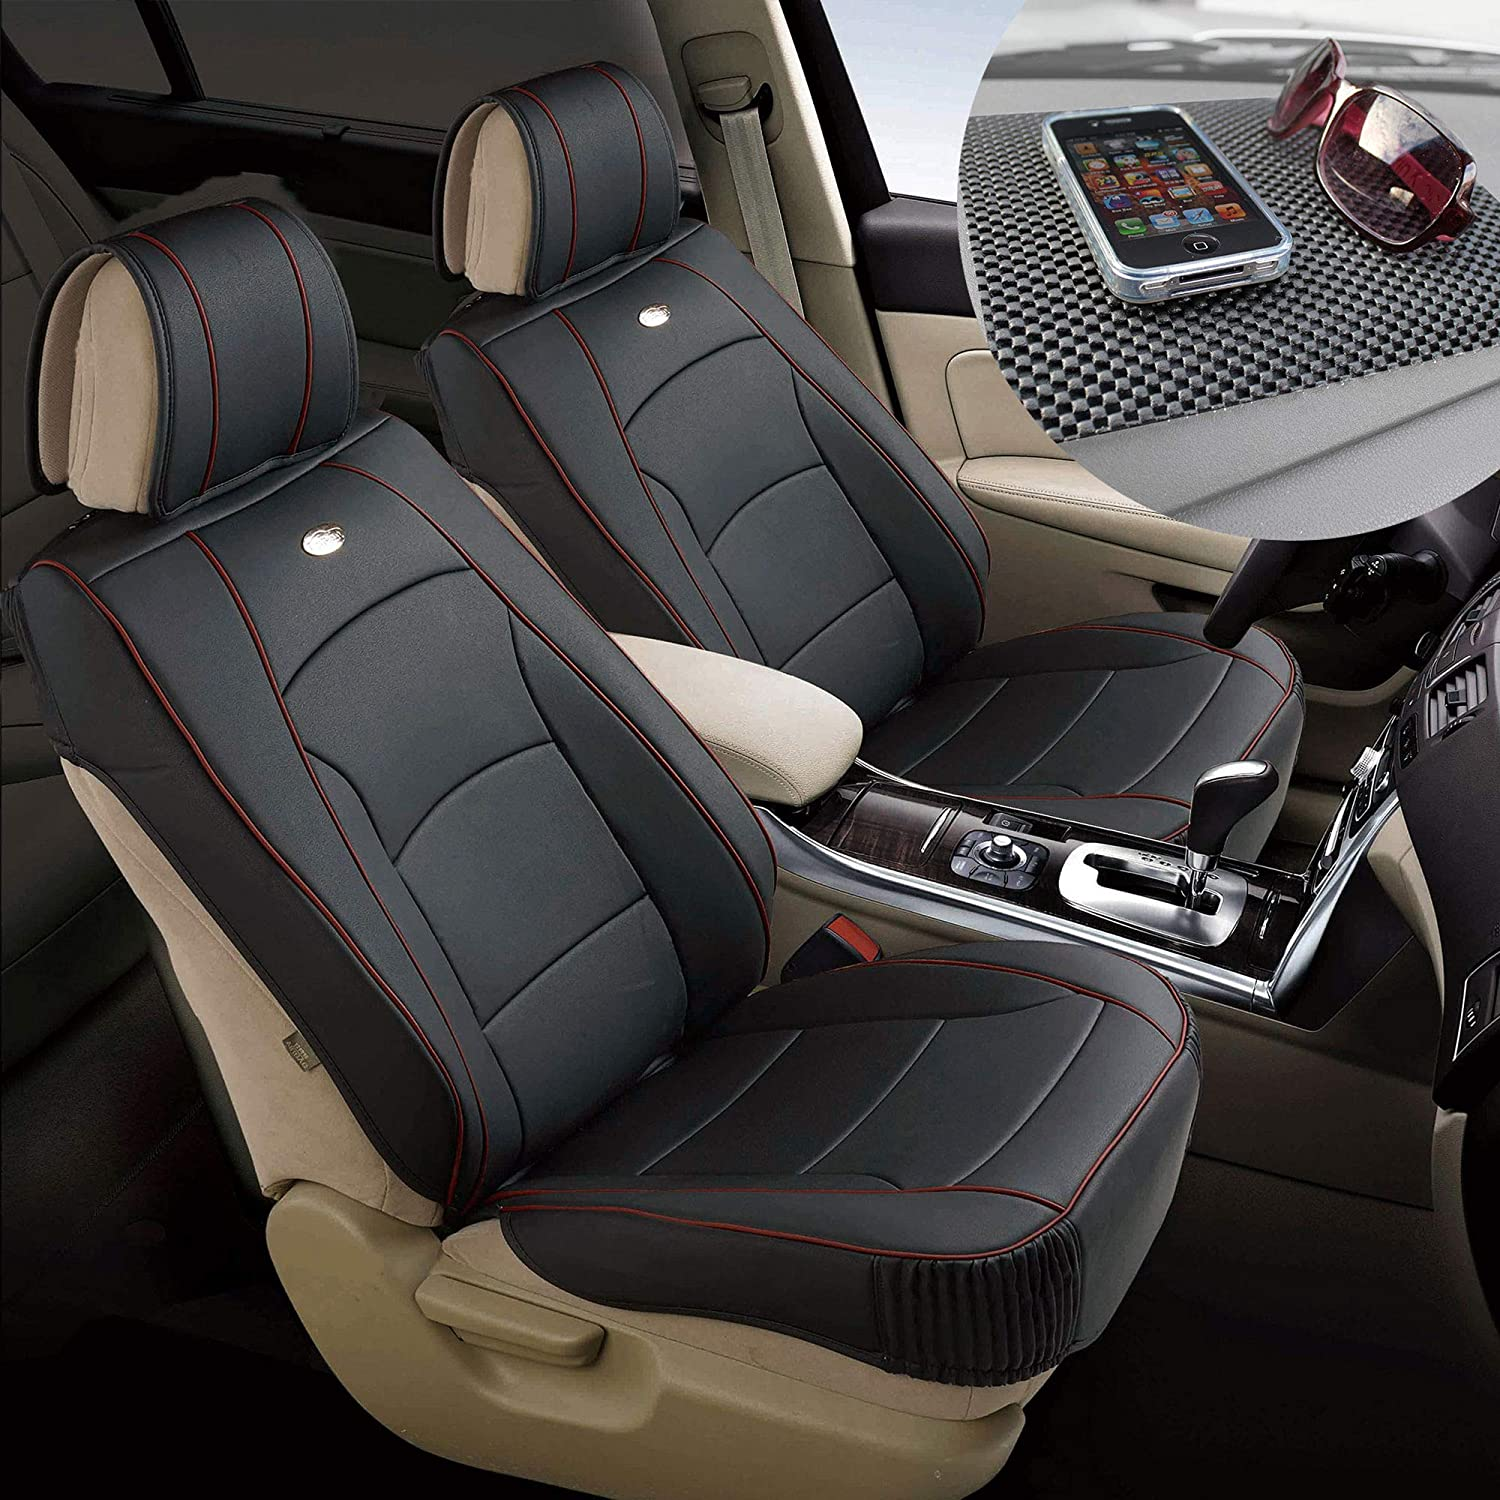 TLH Ultra Comfort Leatherette Seat Cushions Front, Black Red Trim Color w/Non Slip Dash Mat